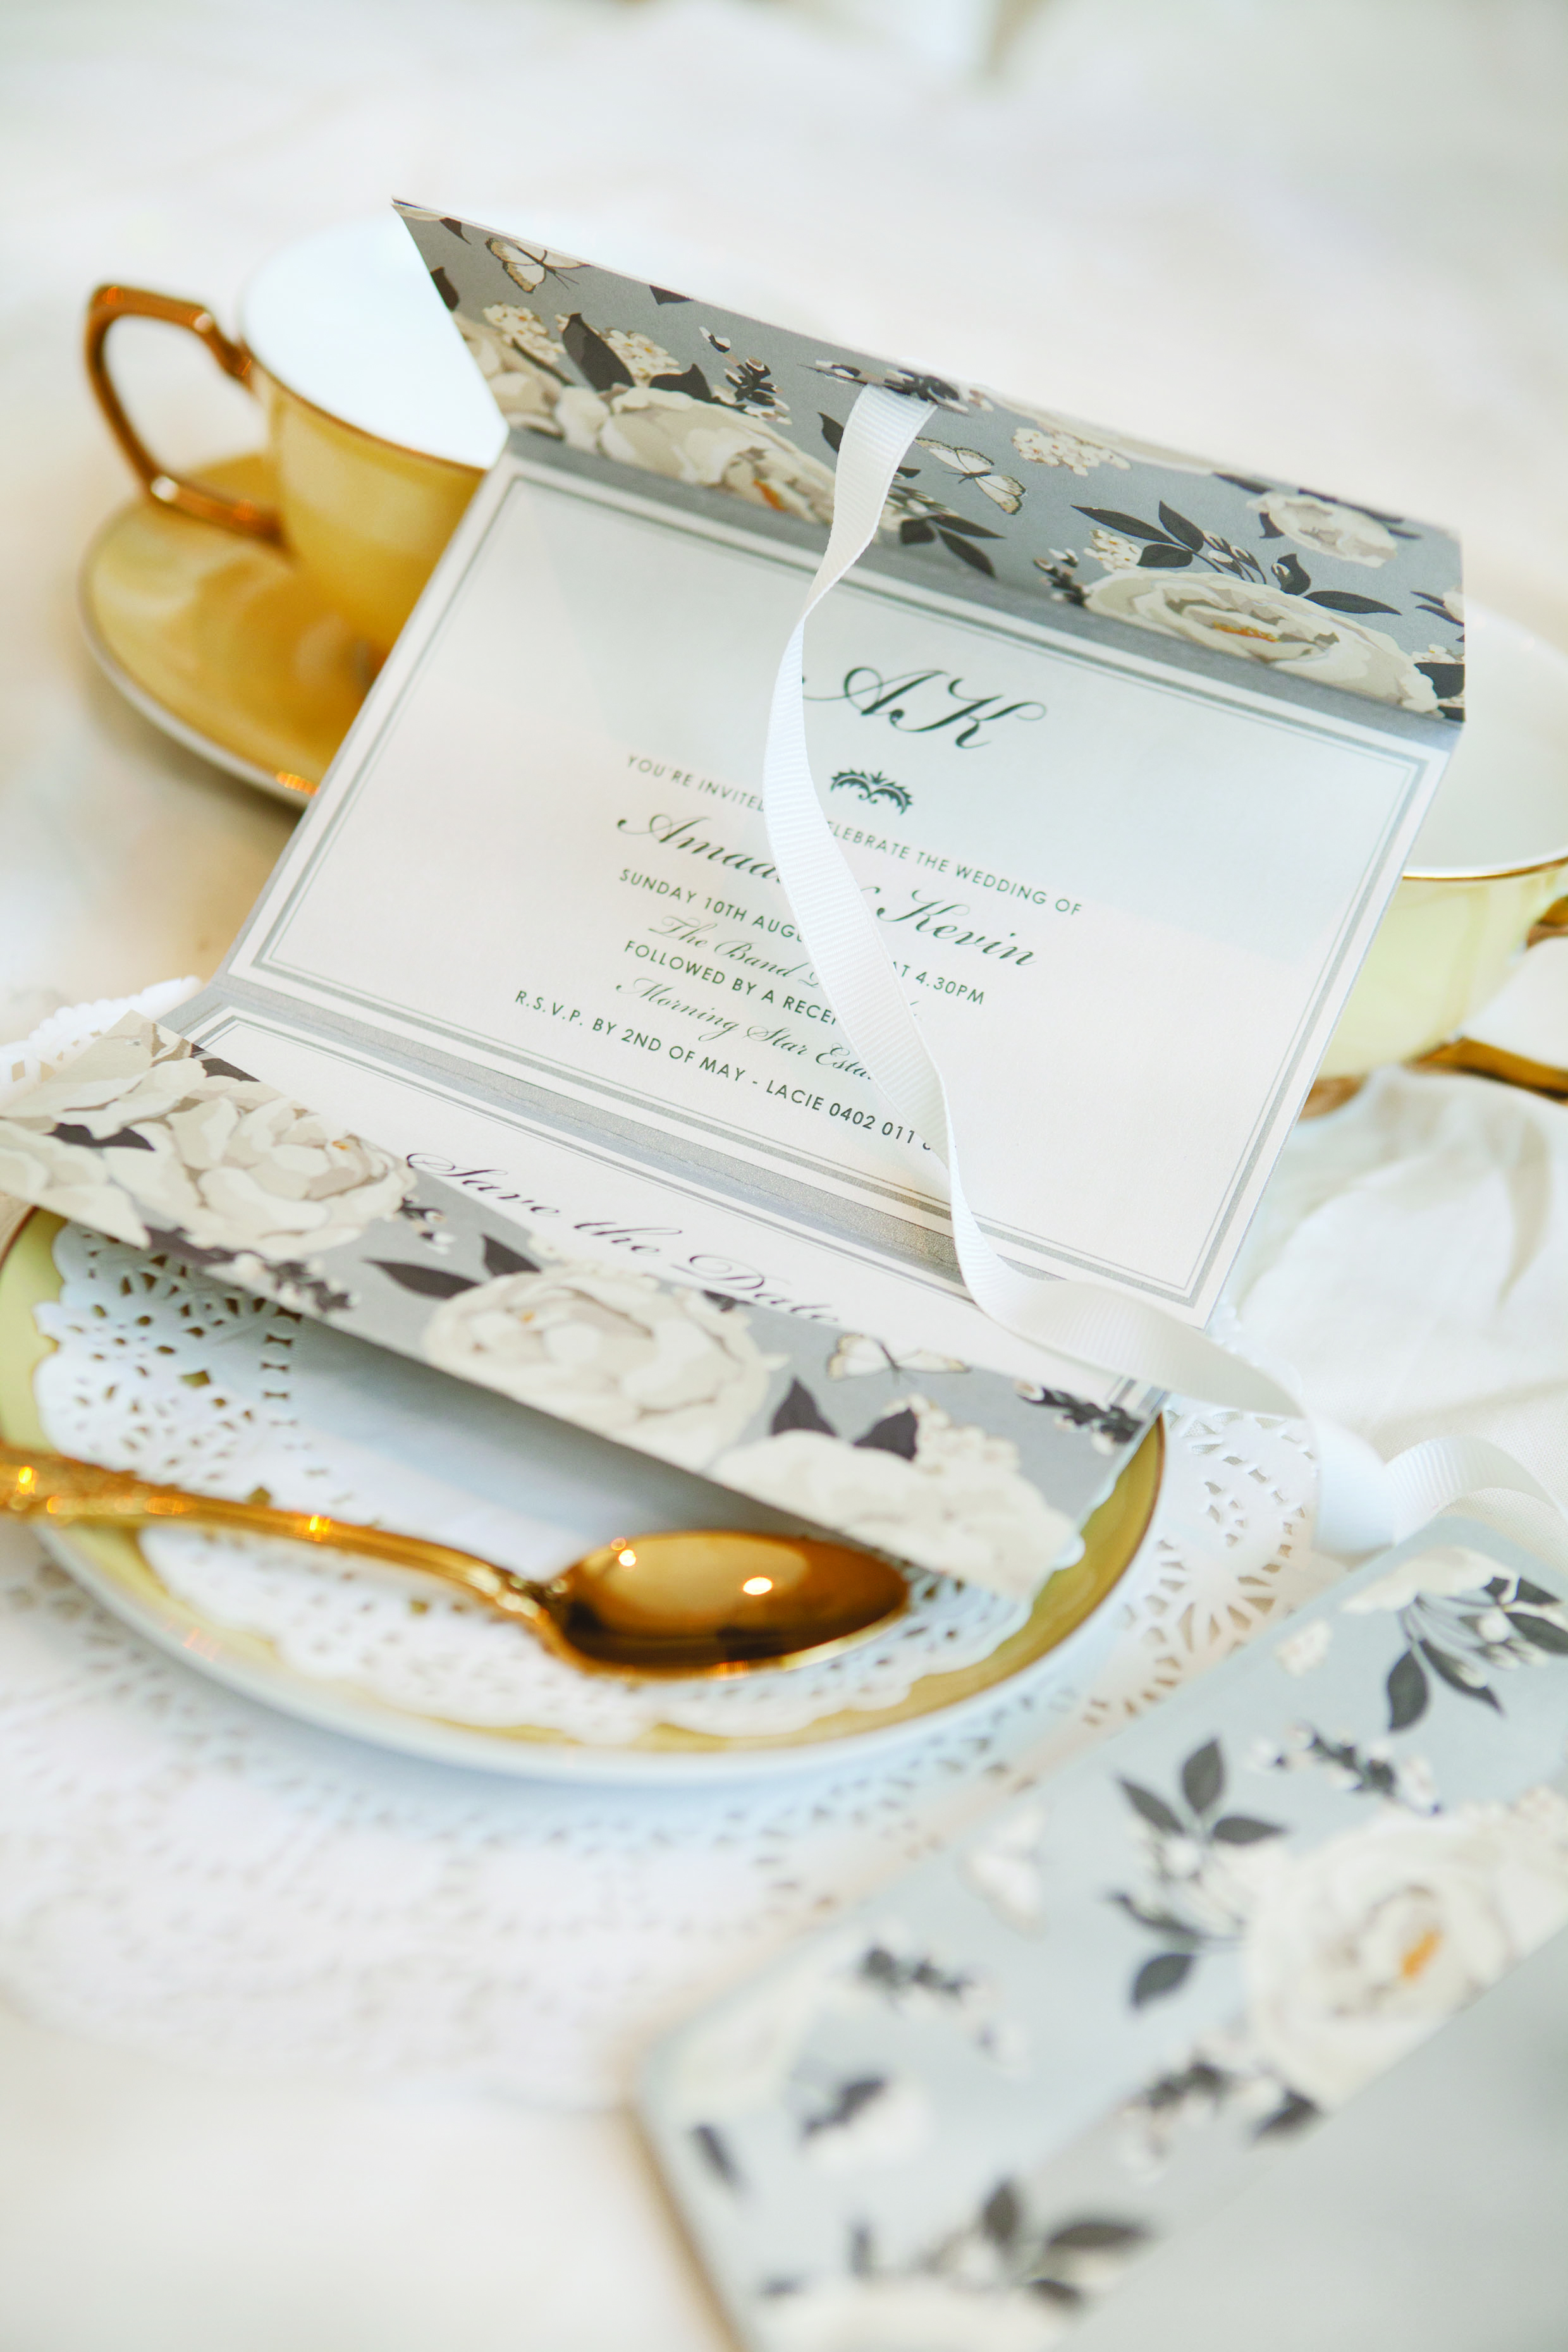 Invite Only: A Note on Wedding Invitations